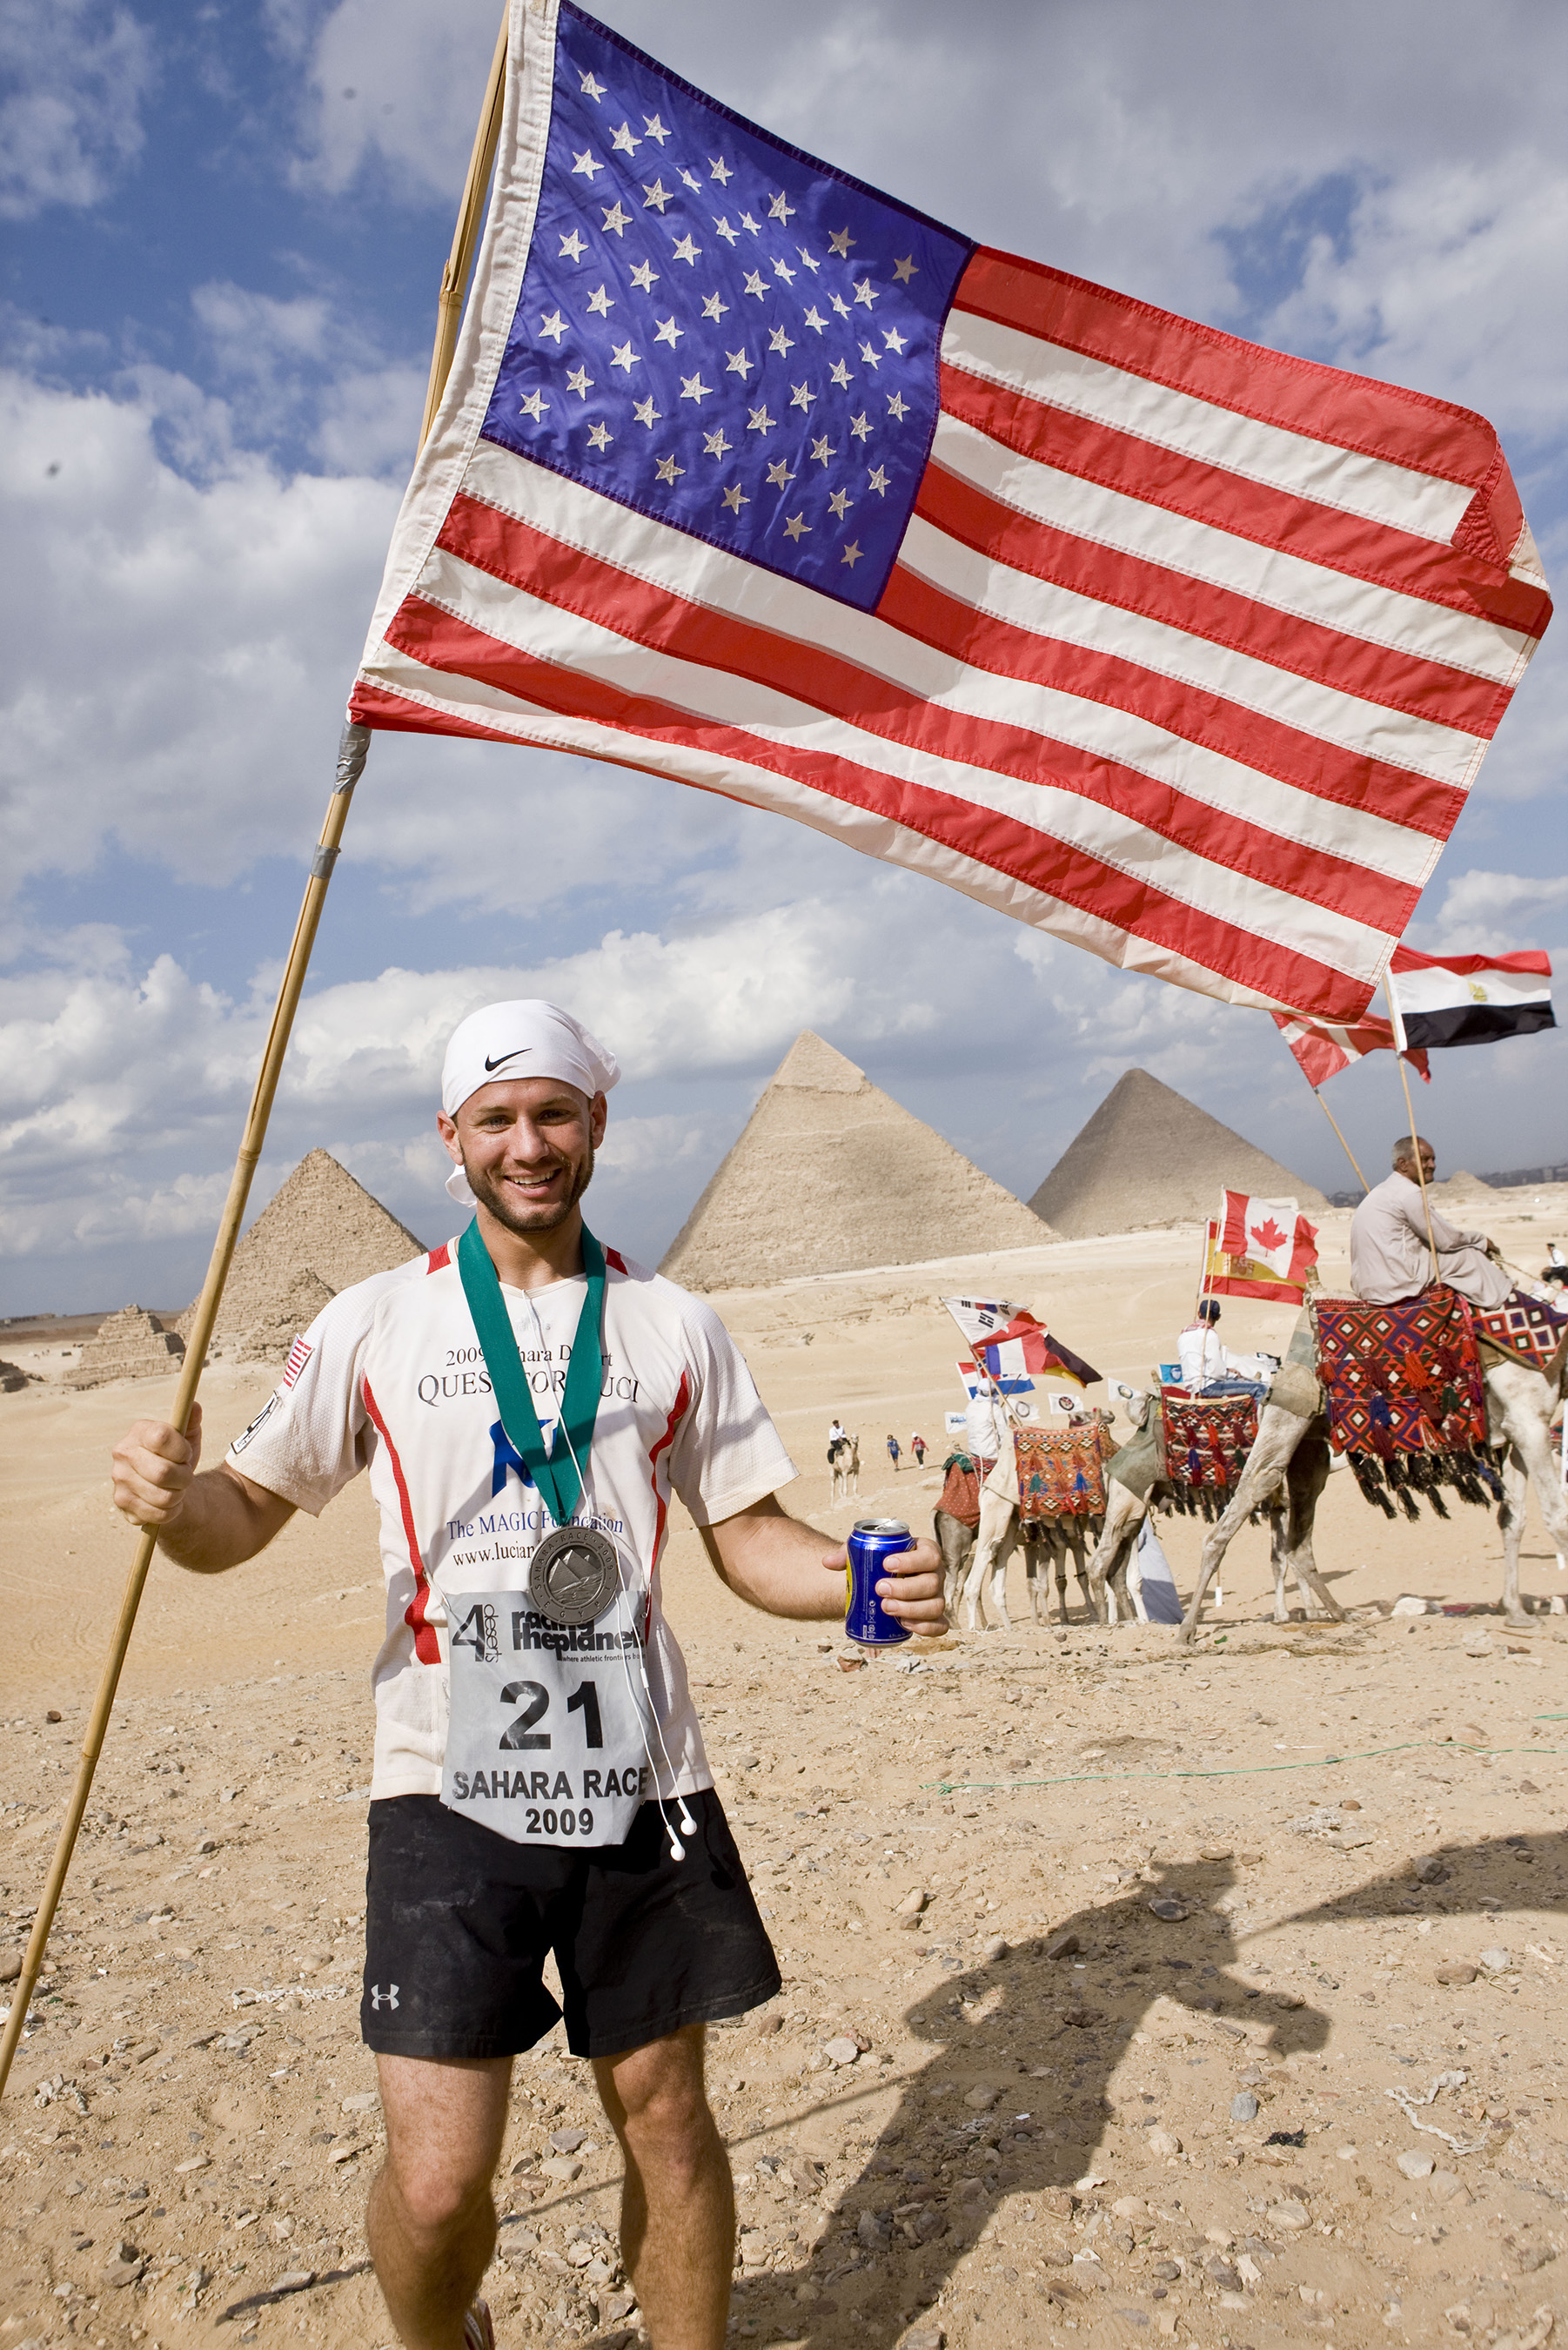 Chmiel after finishing the 6 day, 155-mile footrace across the Sahara Desert in Egypt in 2009 where he took 5th place.